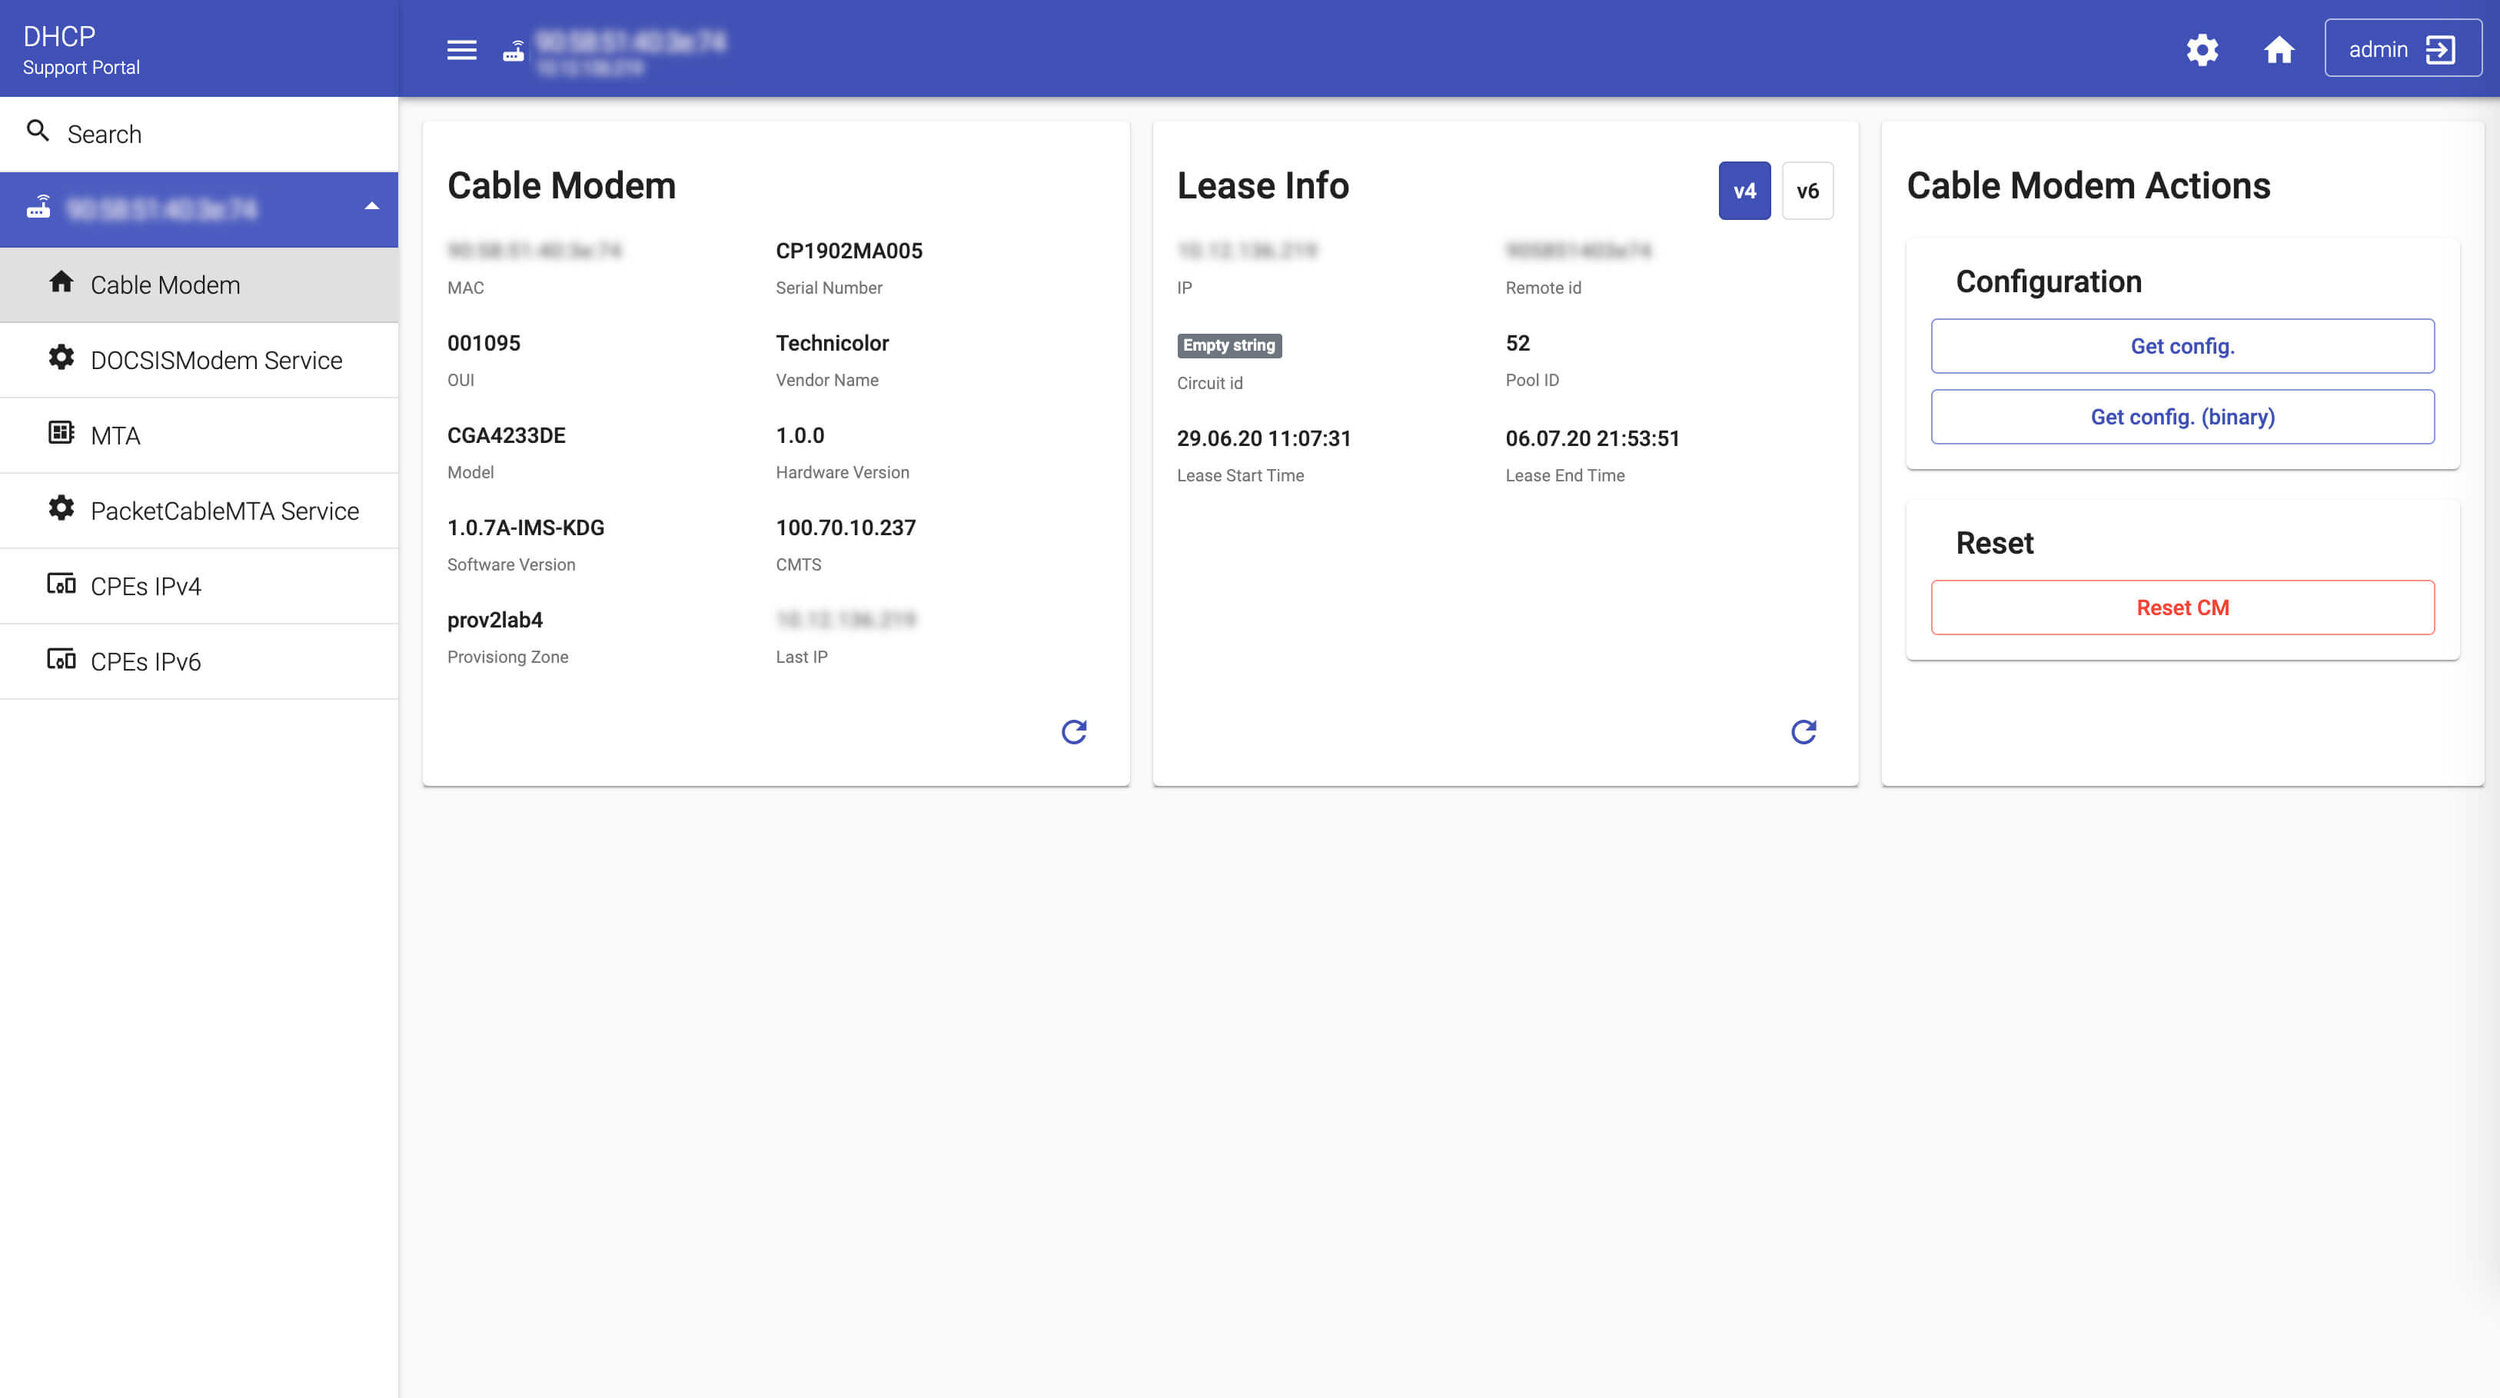 DHCP Support Portal DOCSIS.jpg